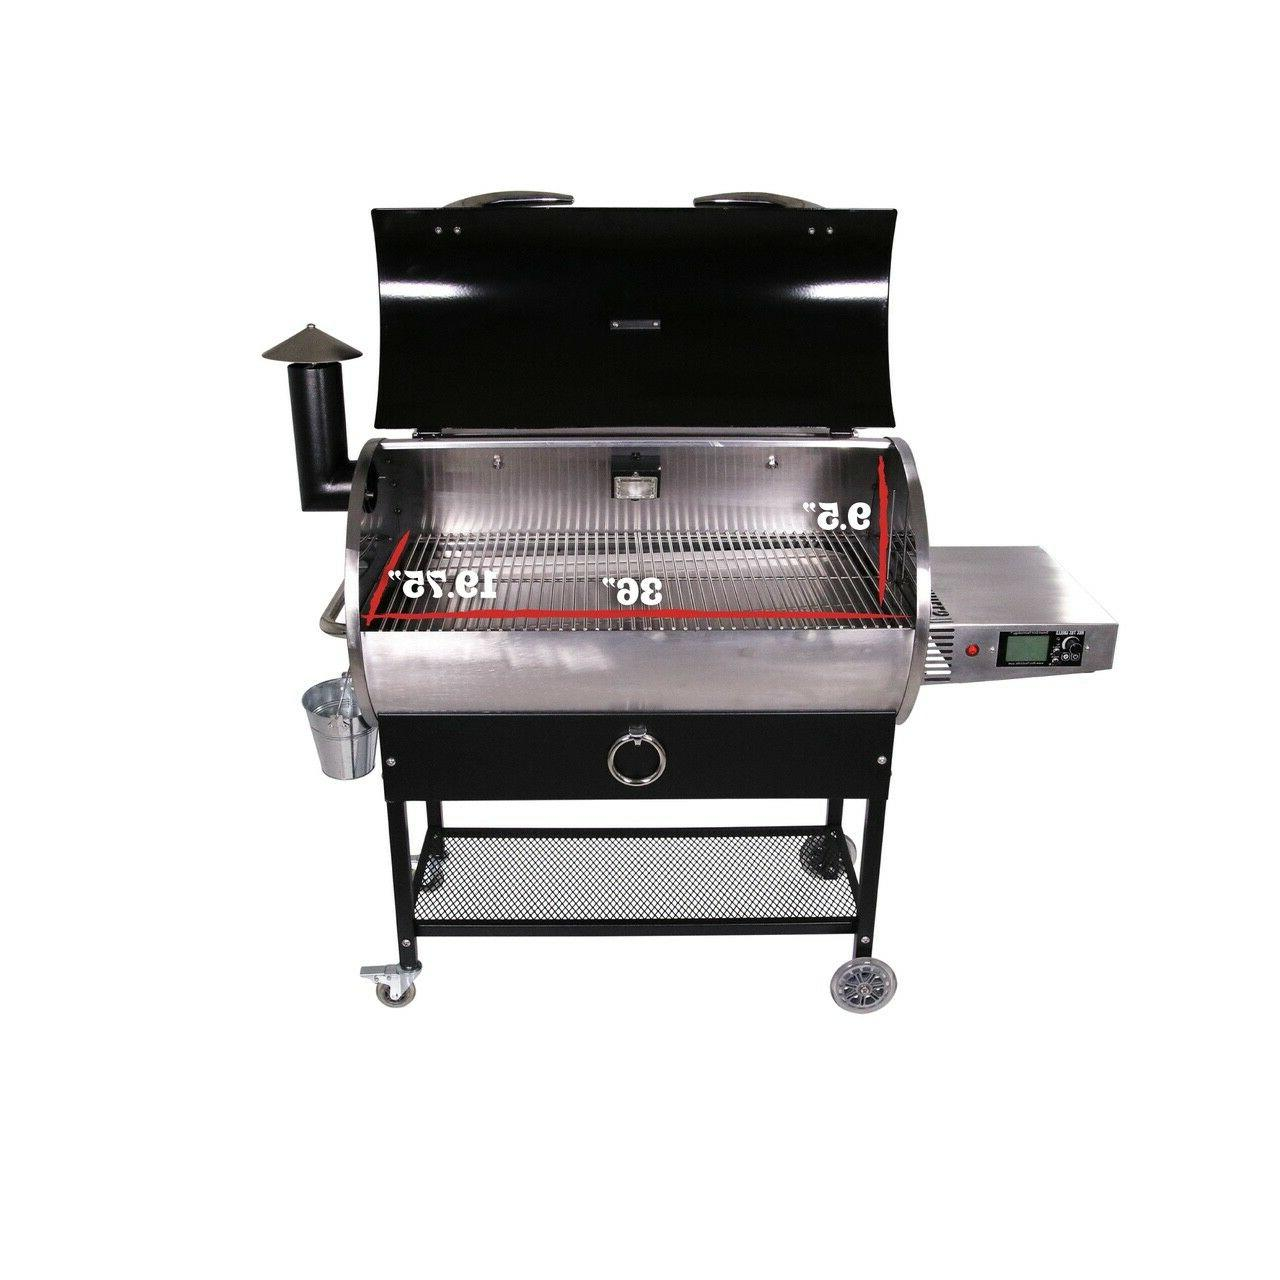 REC RT-700 | WiPellet Enabled Grill